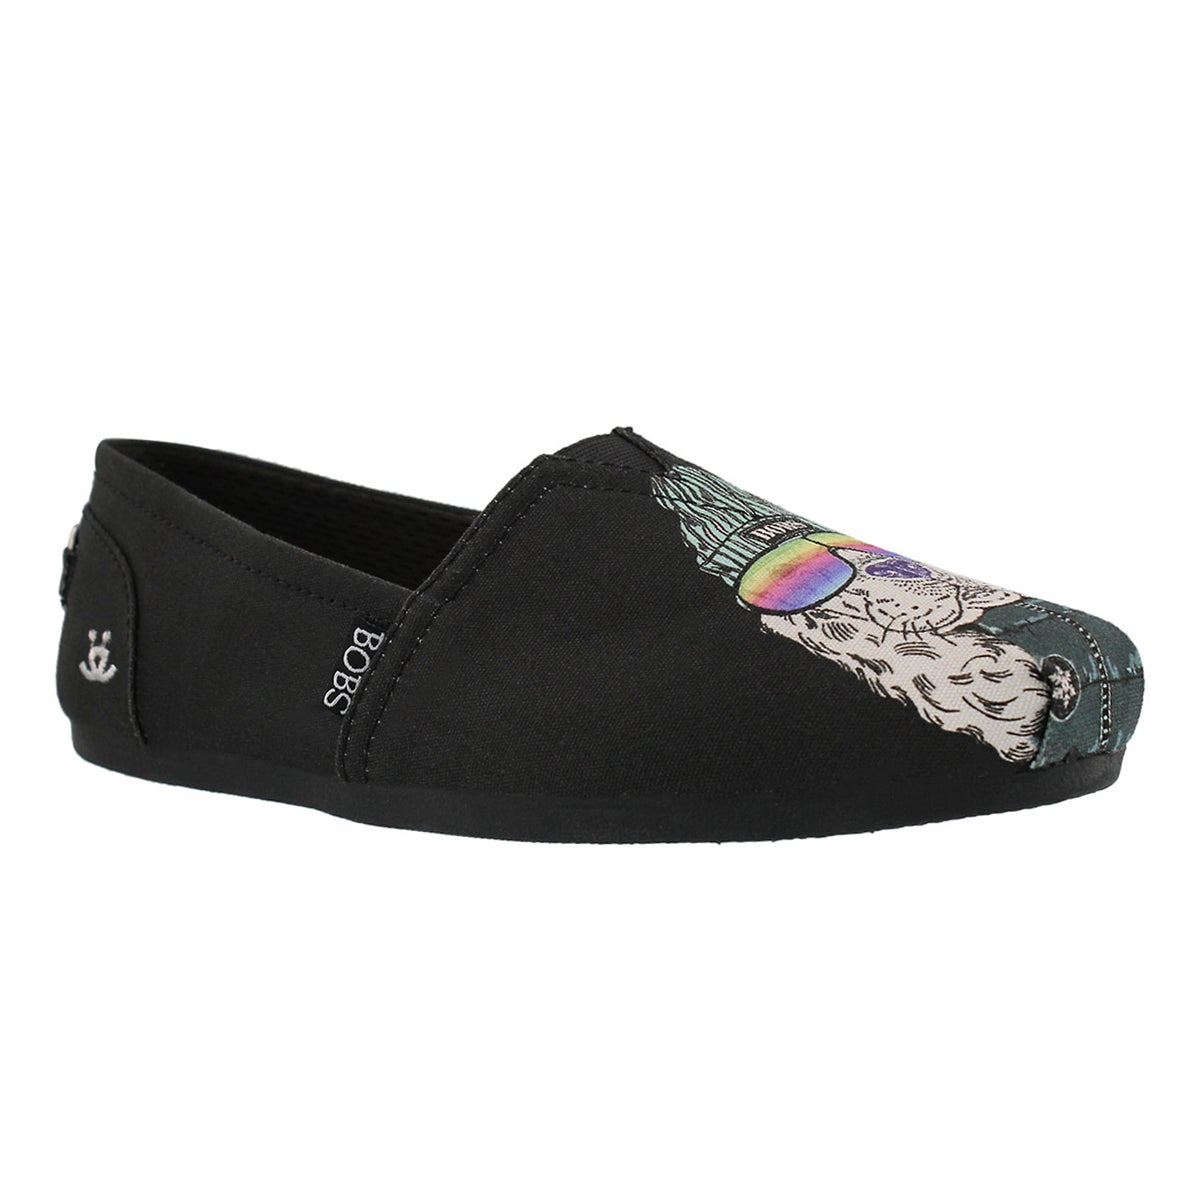 Women's BOBS PLUSH OUTPAWS black pug slip ons